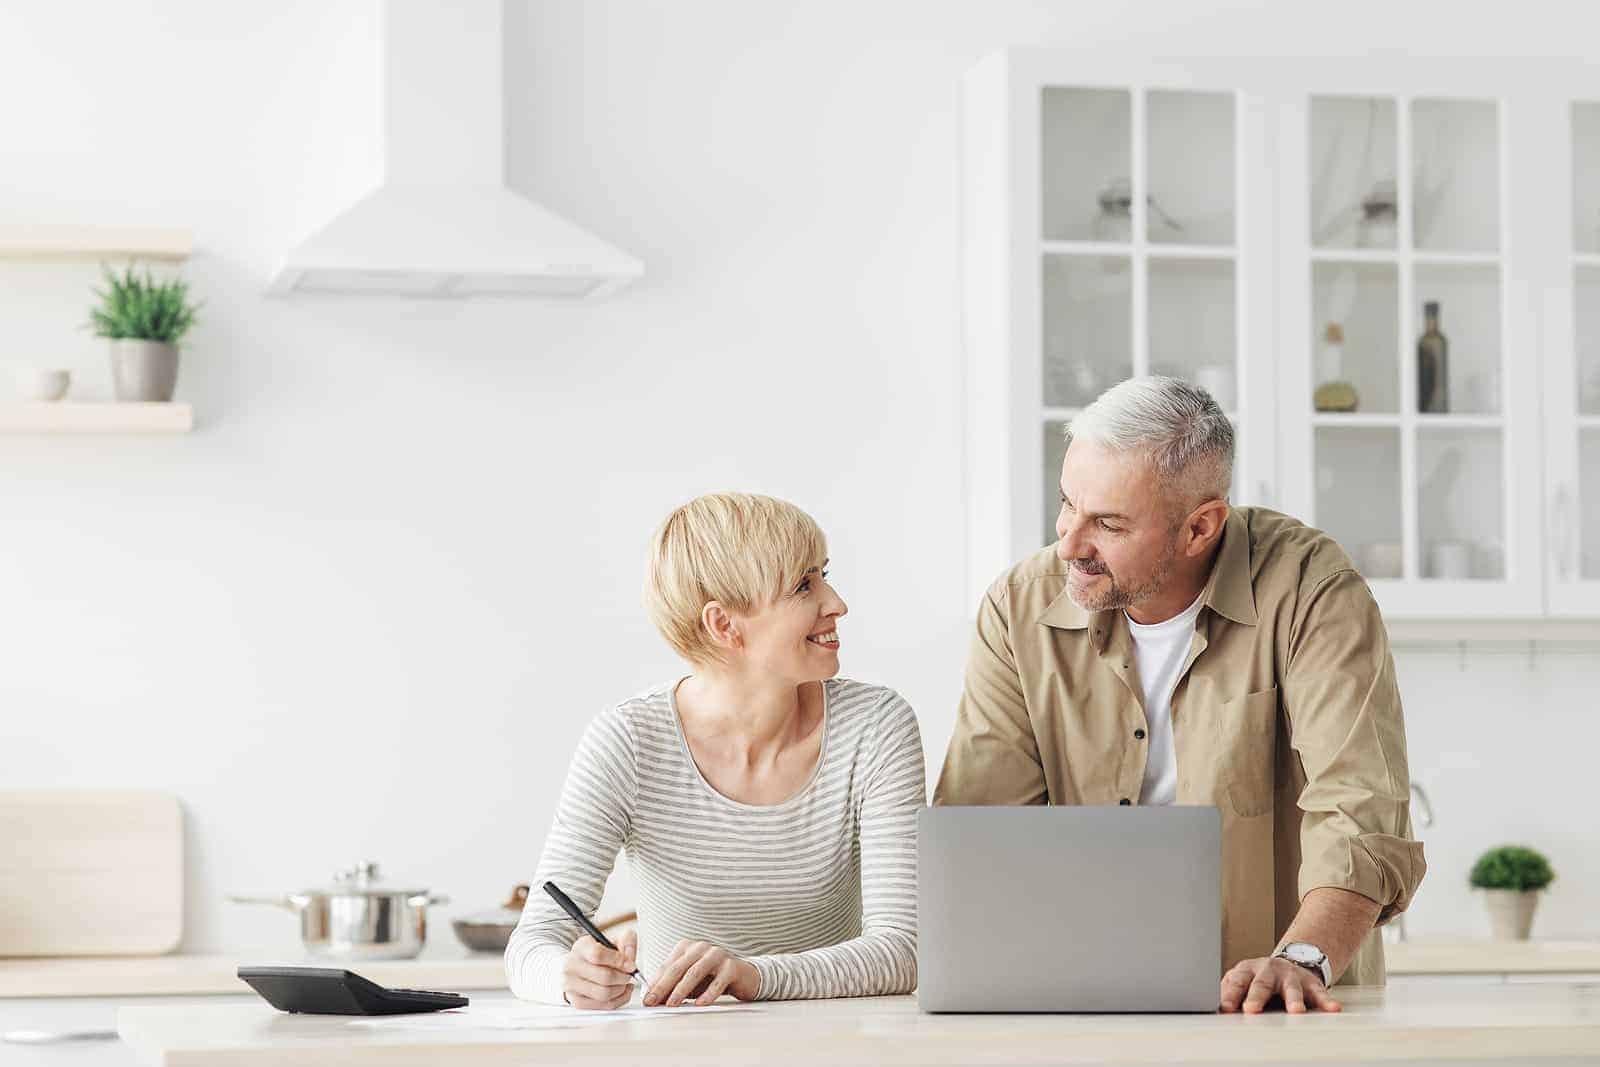 smiling couple in home on laptop